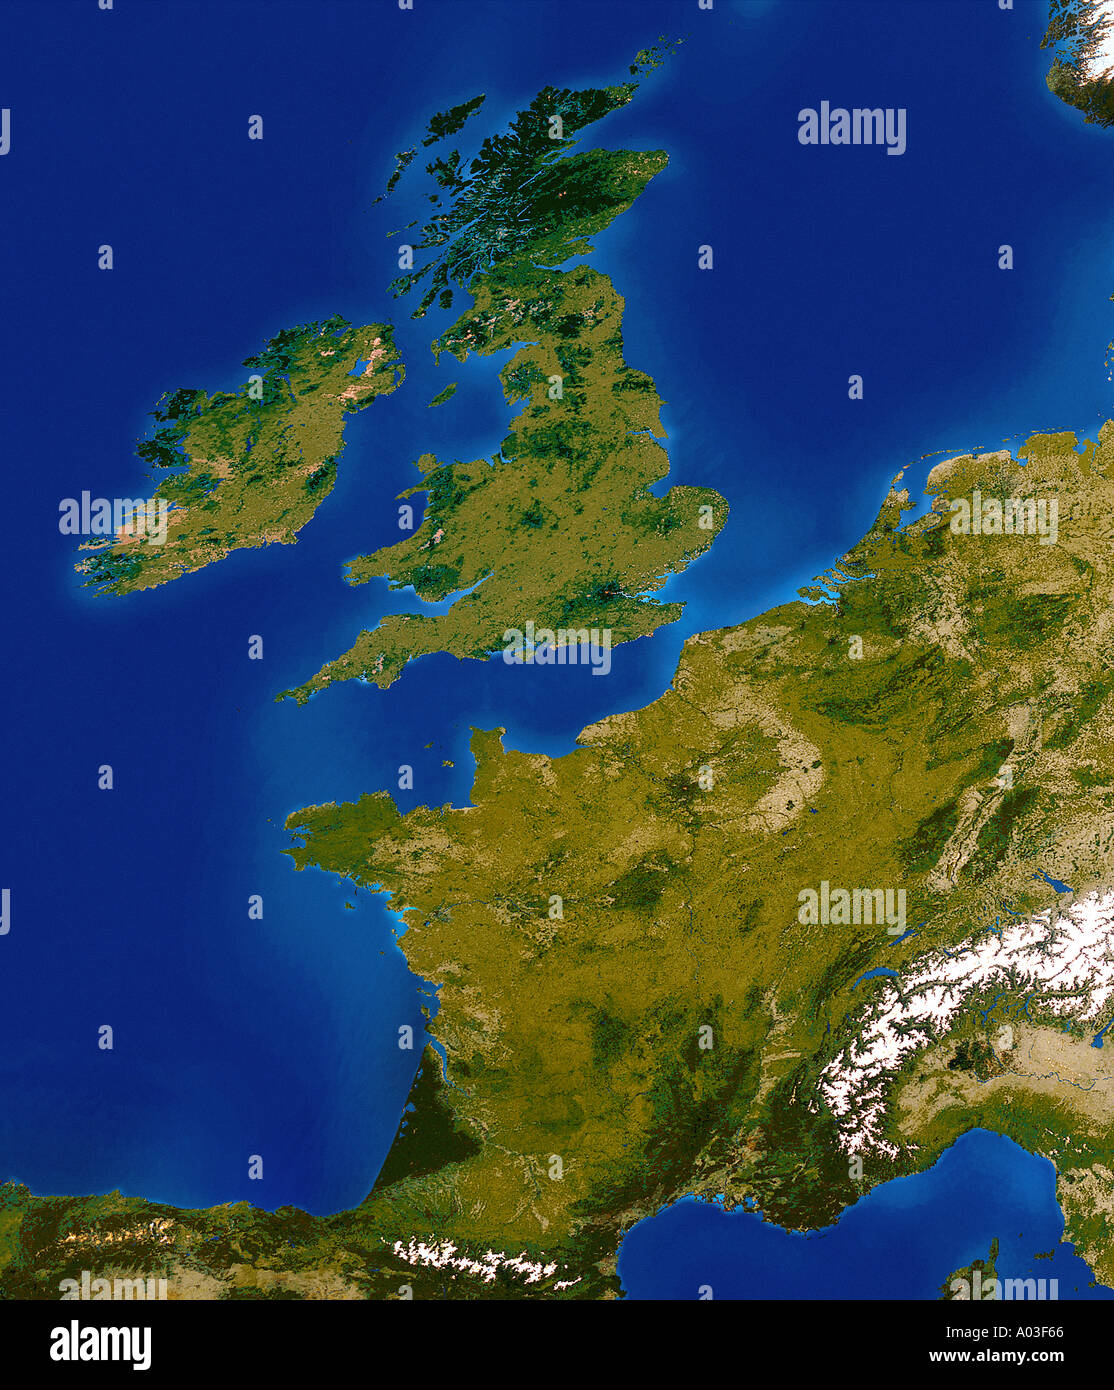 Europe Satellite Continent Stock Photos Europe Satellite - Europe satellite map